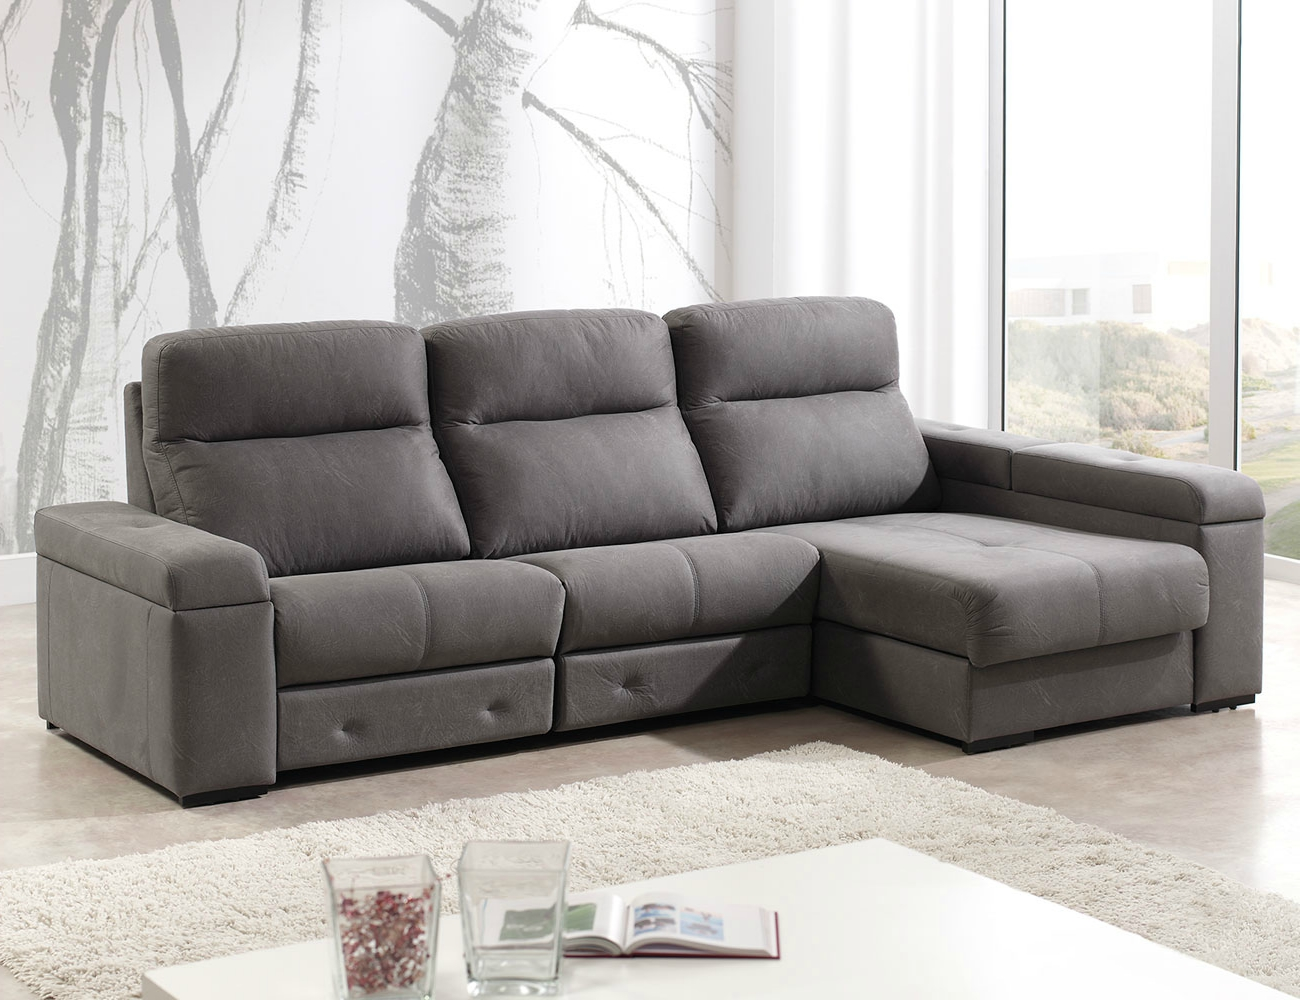 Sofa chaiselongue relax motor electrico 3 arcon1